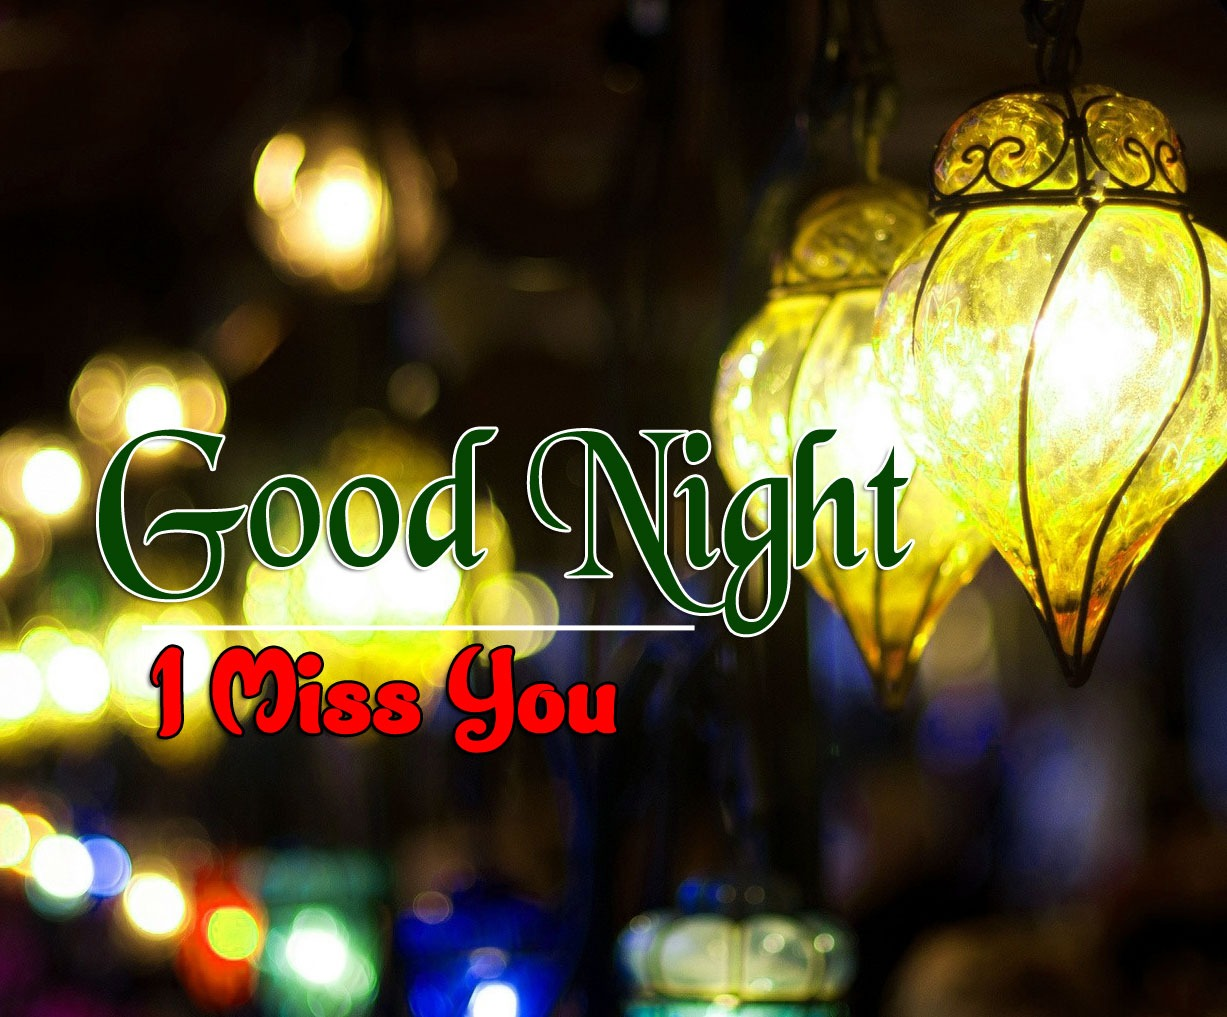 Free HD Quality Good Night Wishes k Images Pics Download